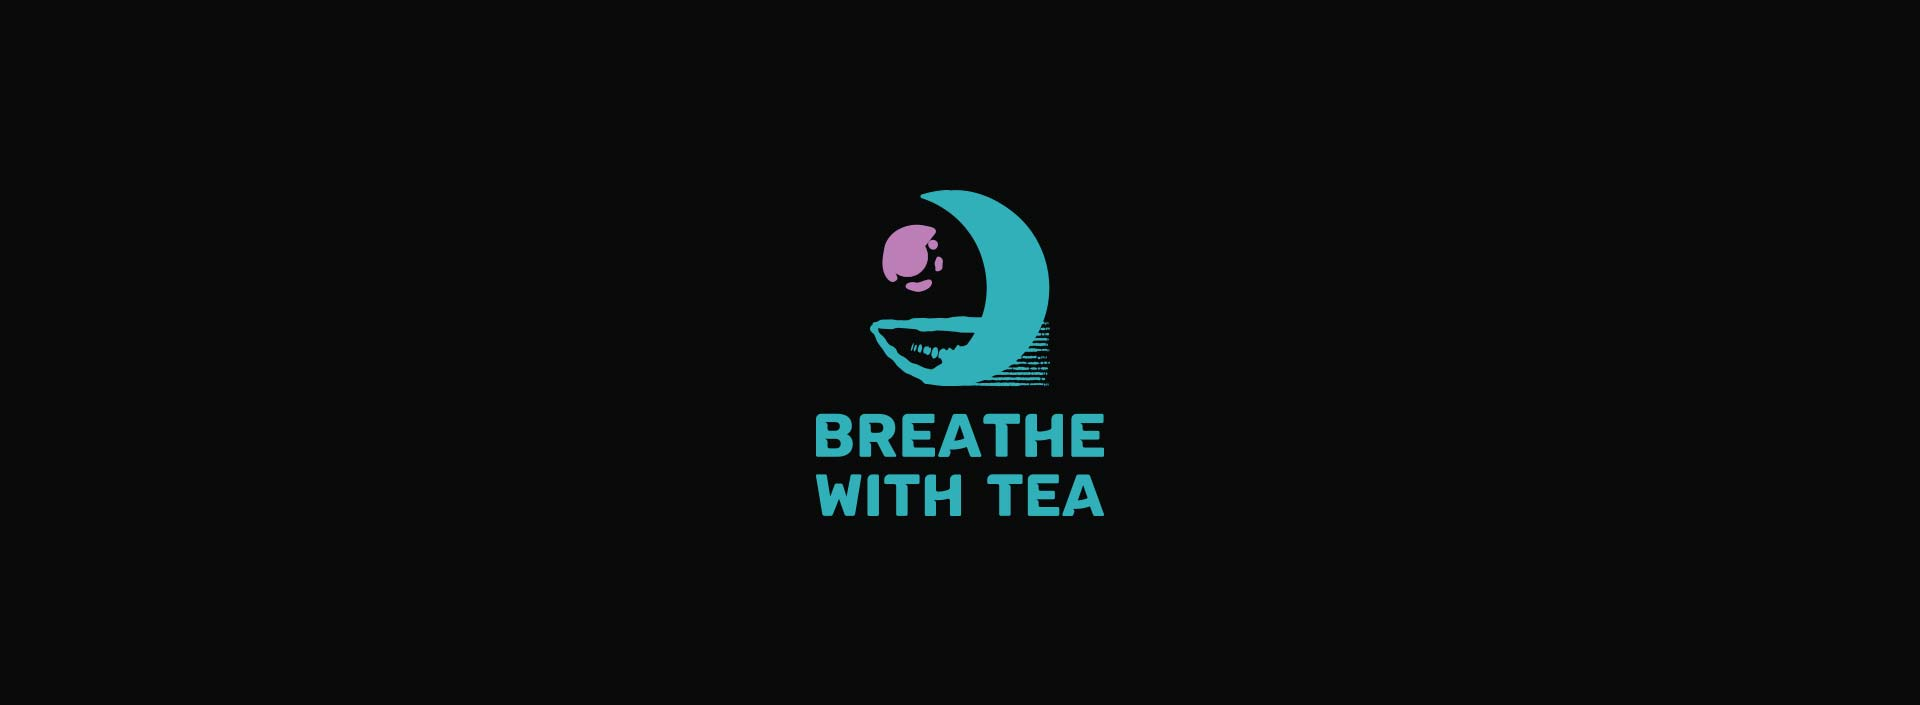 """""""Breathe with Tea"""" logos in a light and dark backgrounds."""